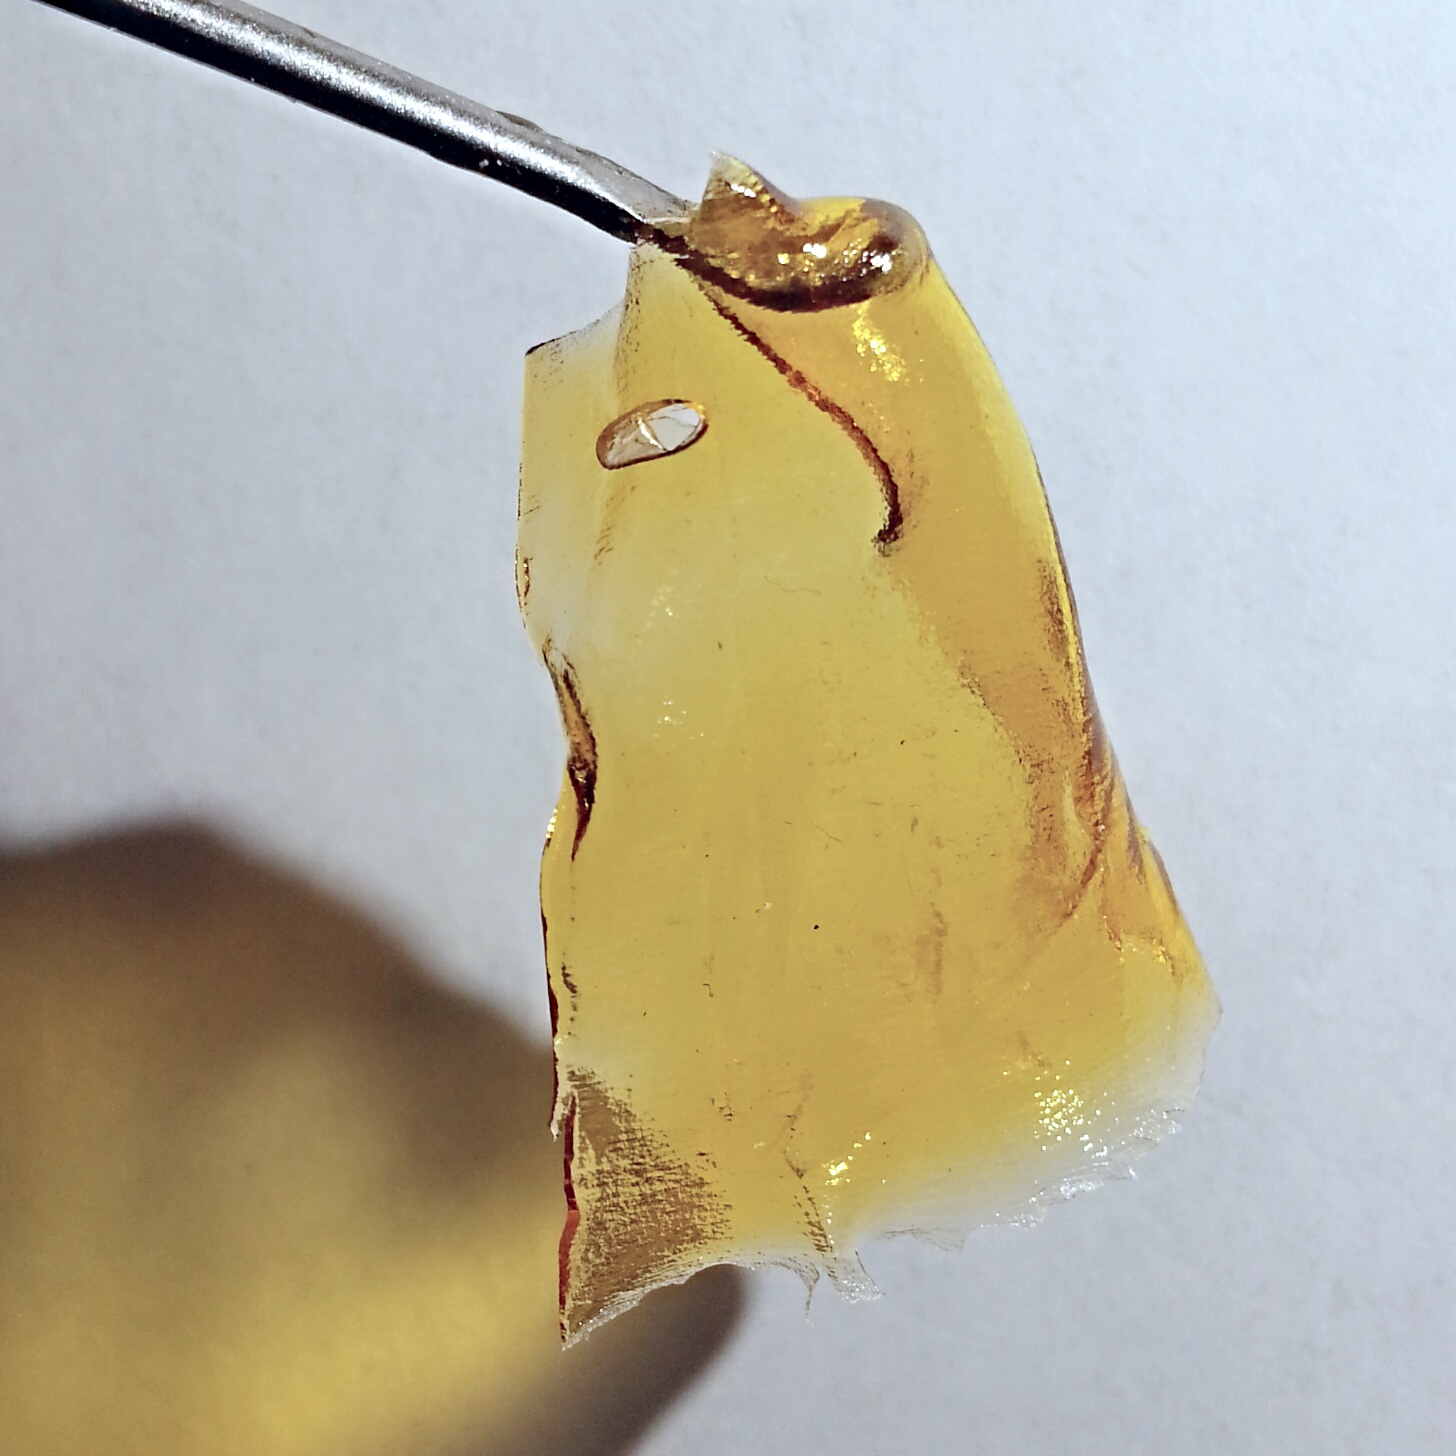 Shatter Oc Weed Review Part 2